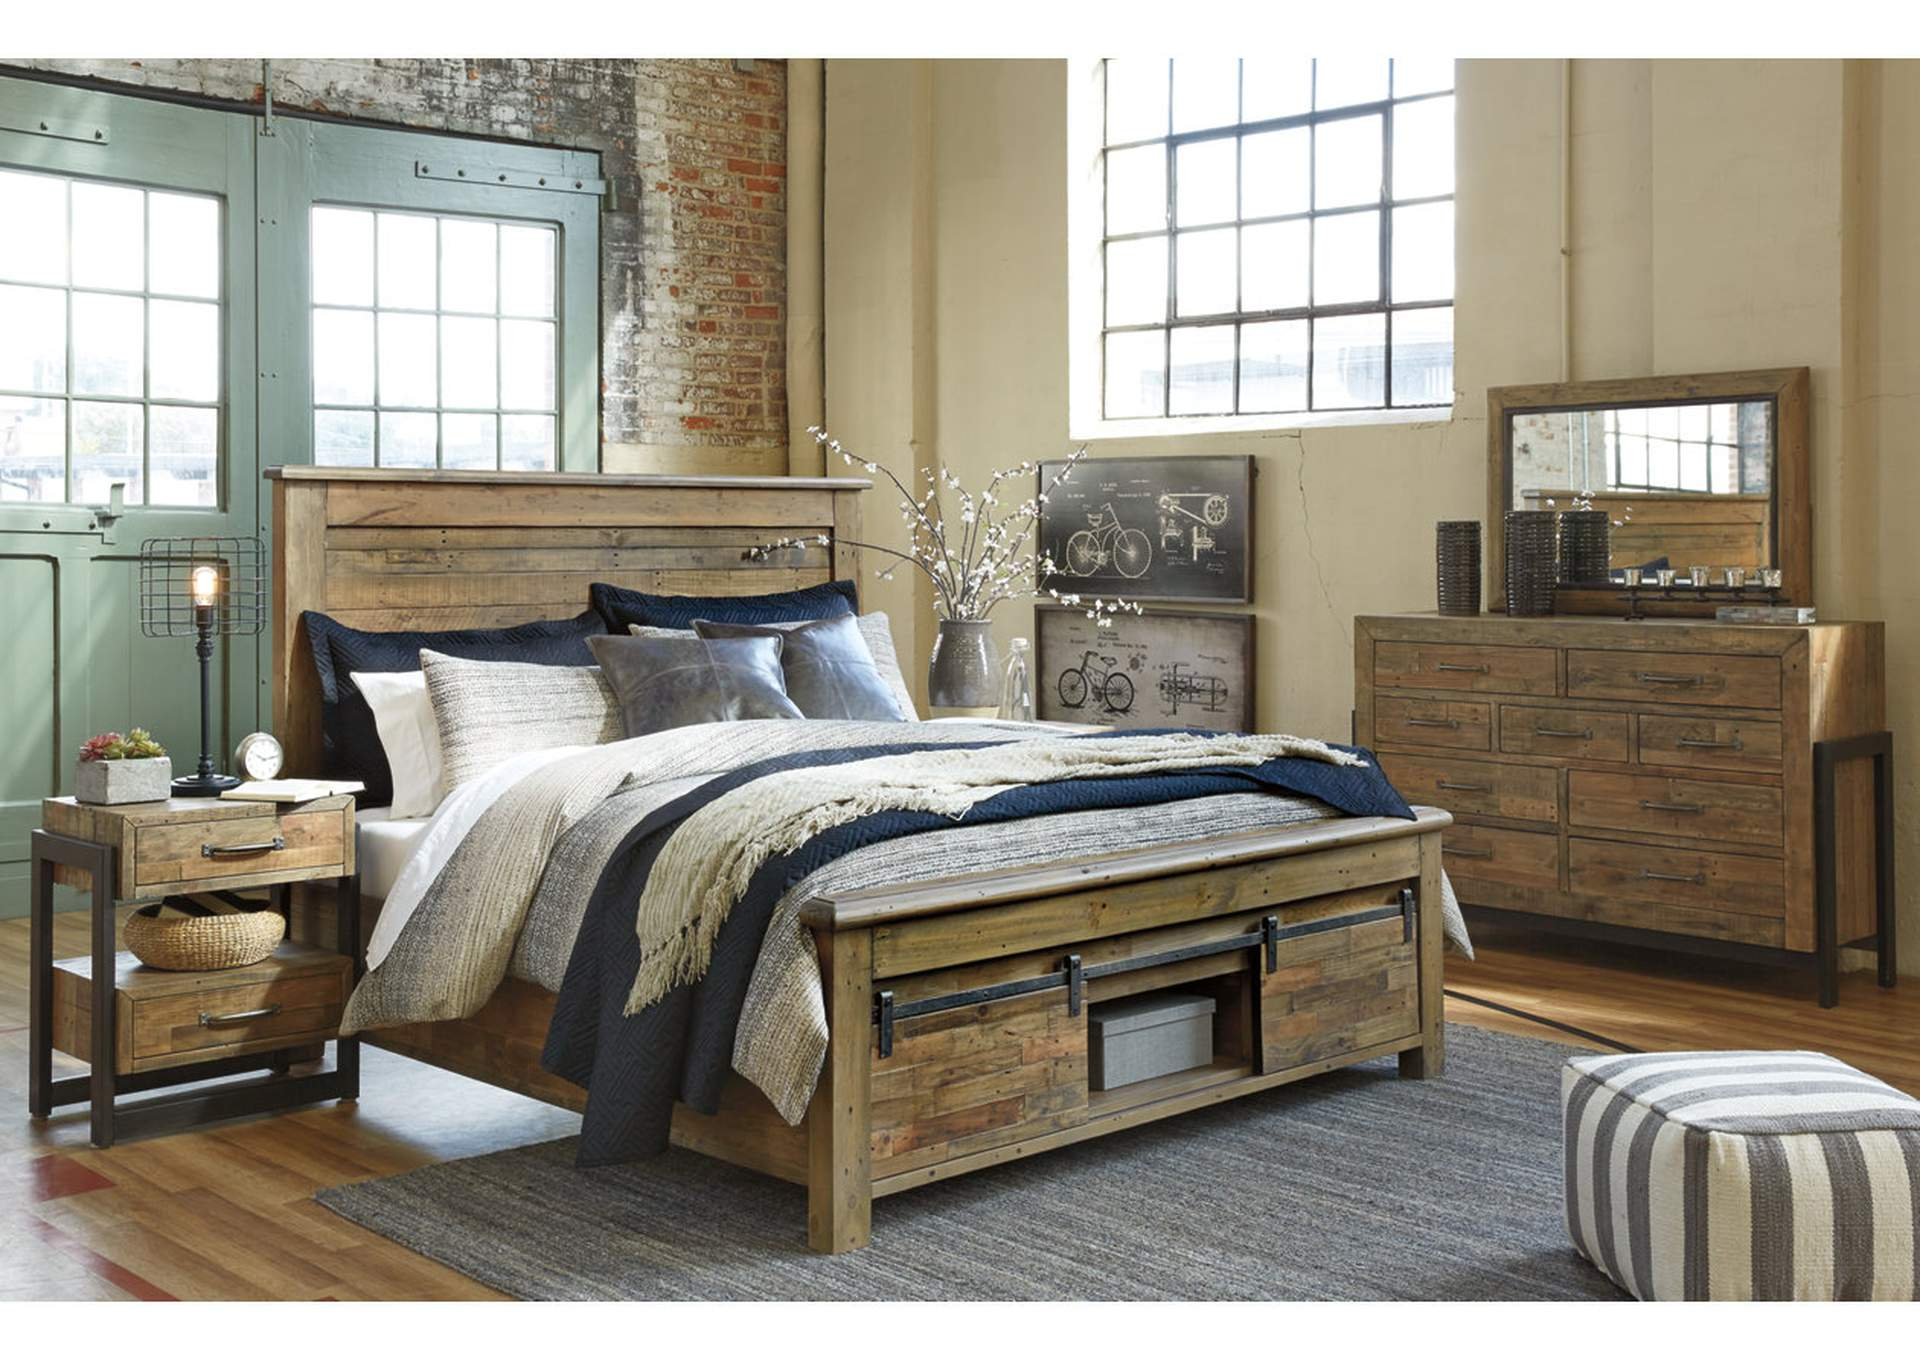 Sommerford Brown Queen Storage Bed w/Dresser, Mirror, Drawer Chest & Nightstand,Signature Design by Ashley